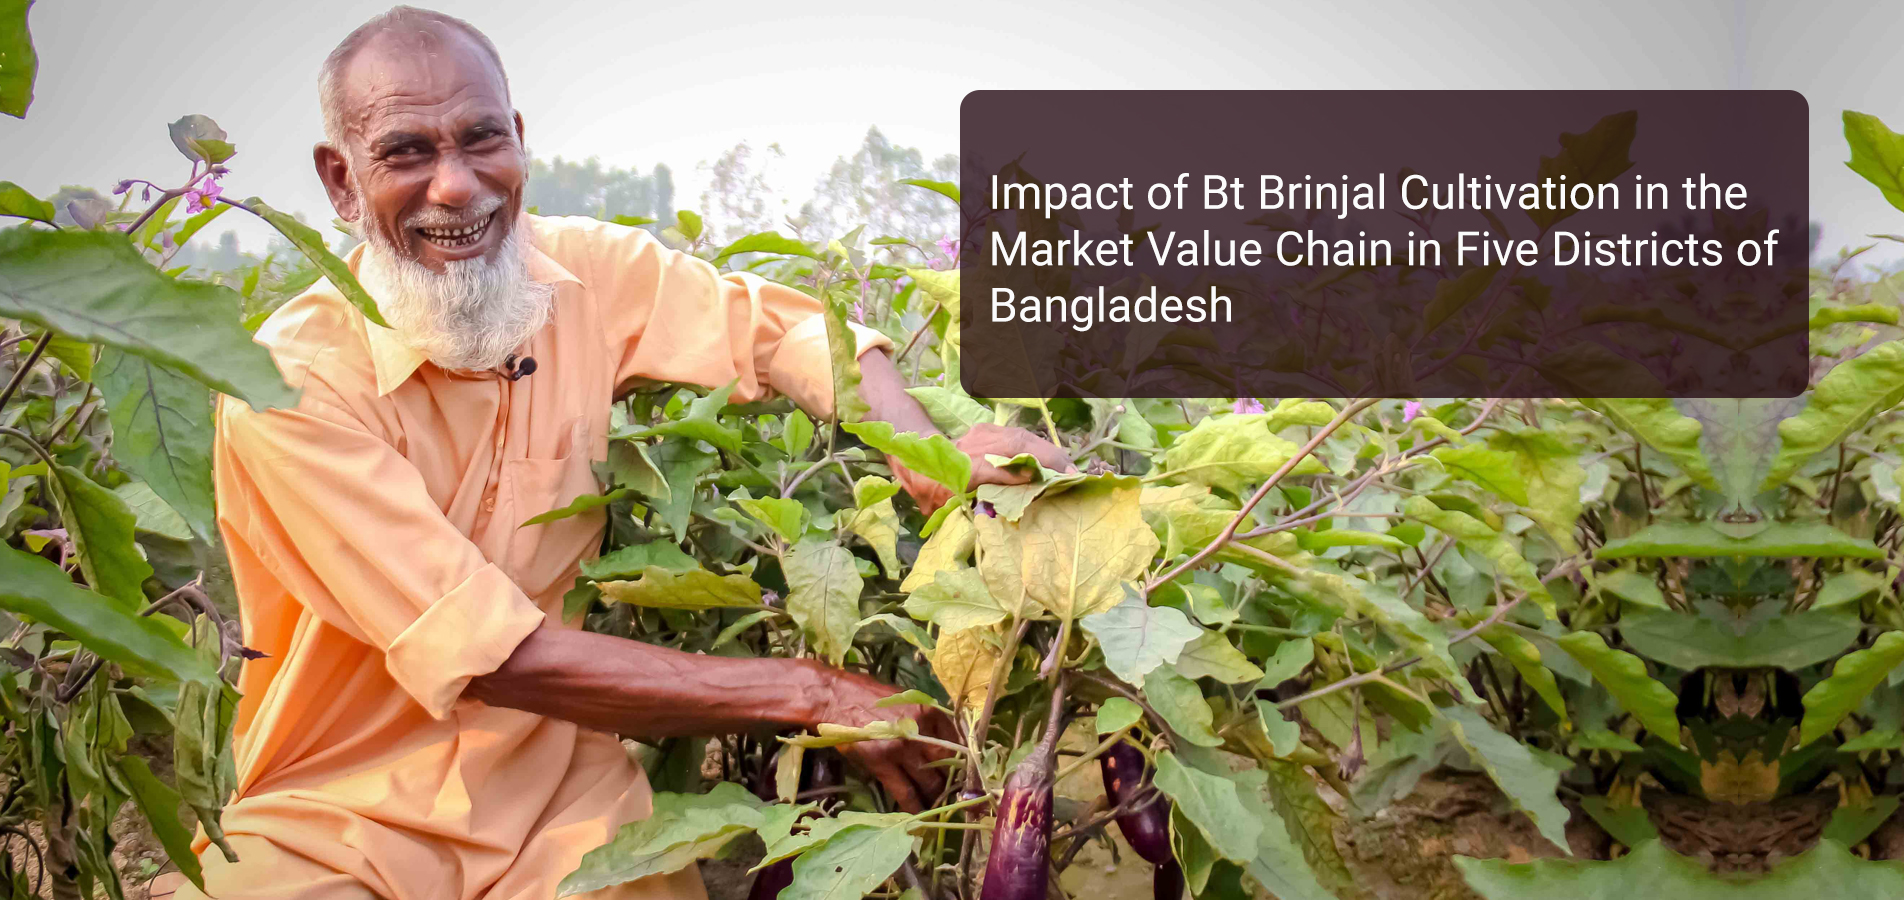 impact-of-bt-brinjal-cultivation-in-the-market-value-chain-in-five-districts-of-bangladesh